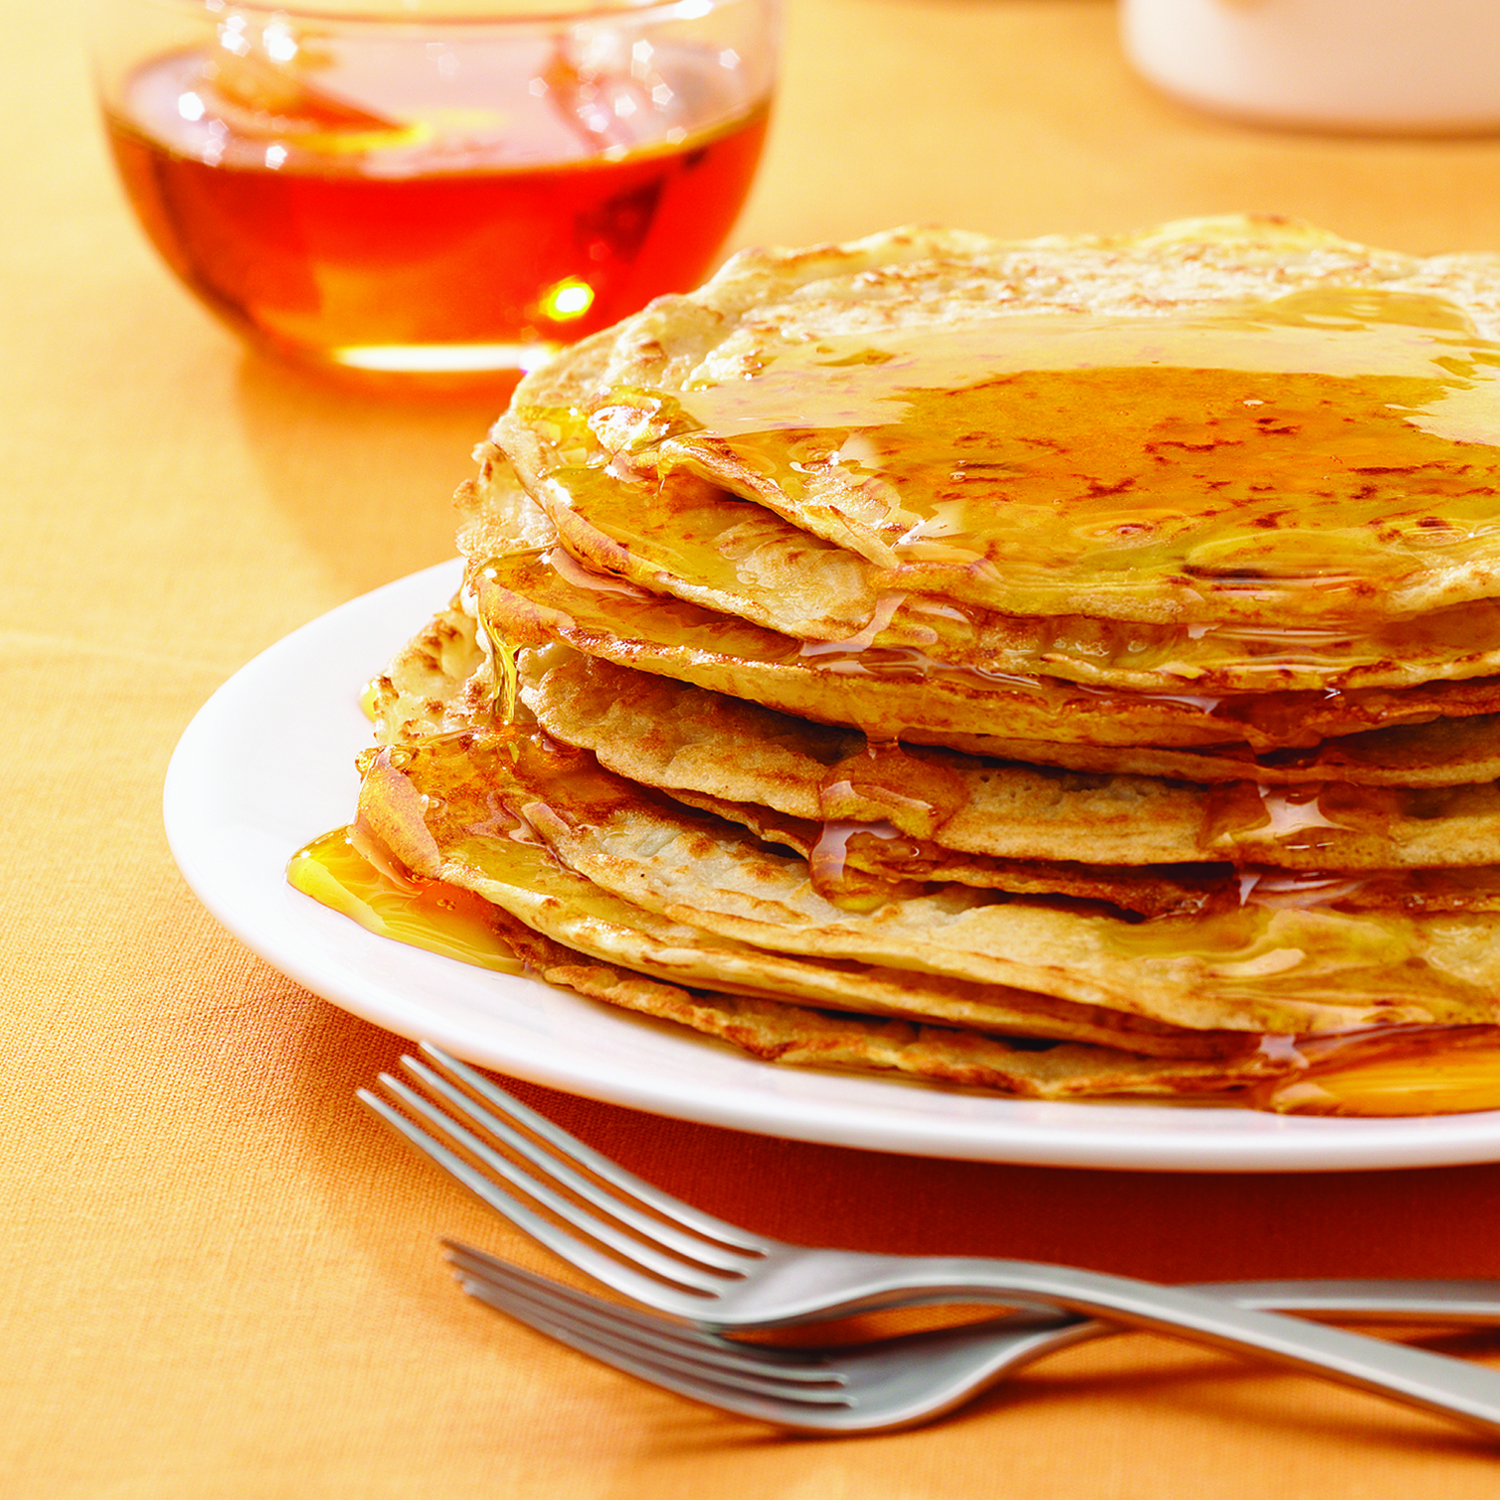 Pancakes with Golden Syrup